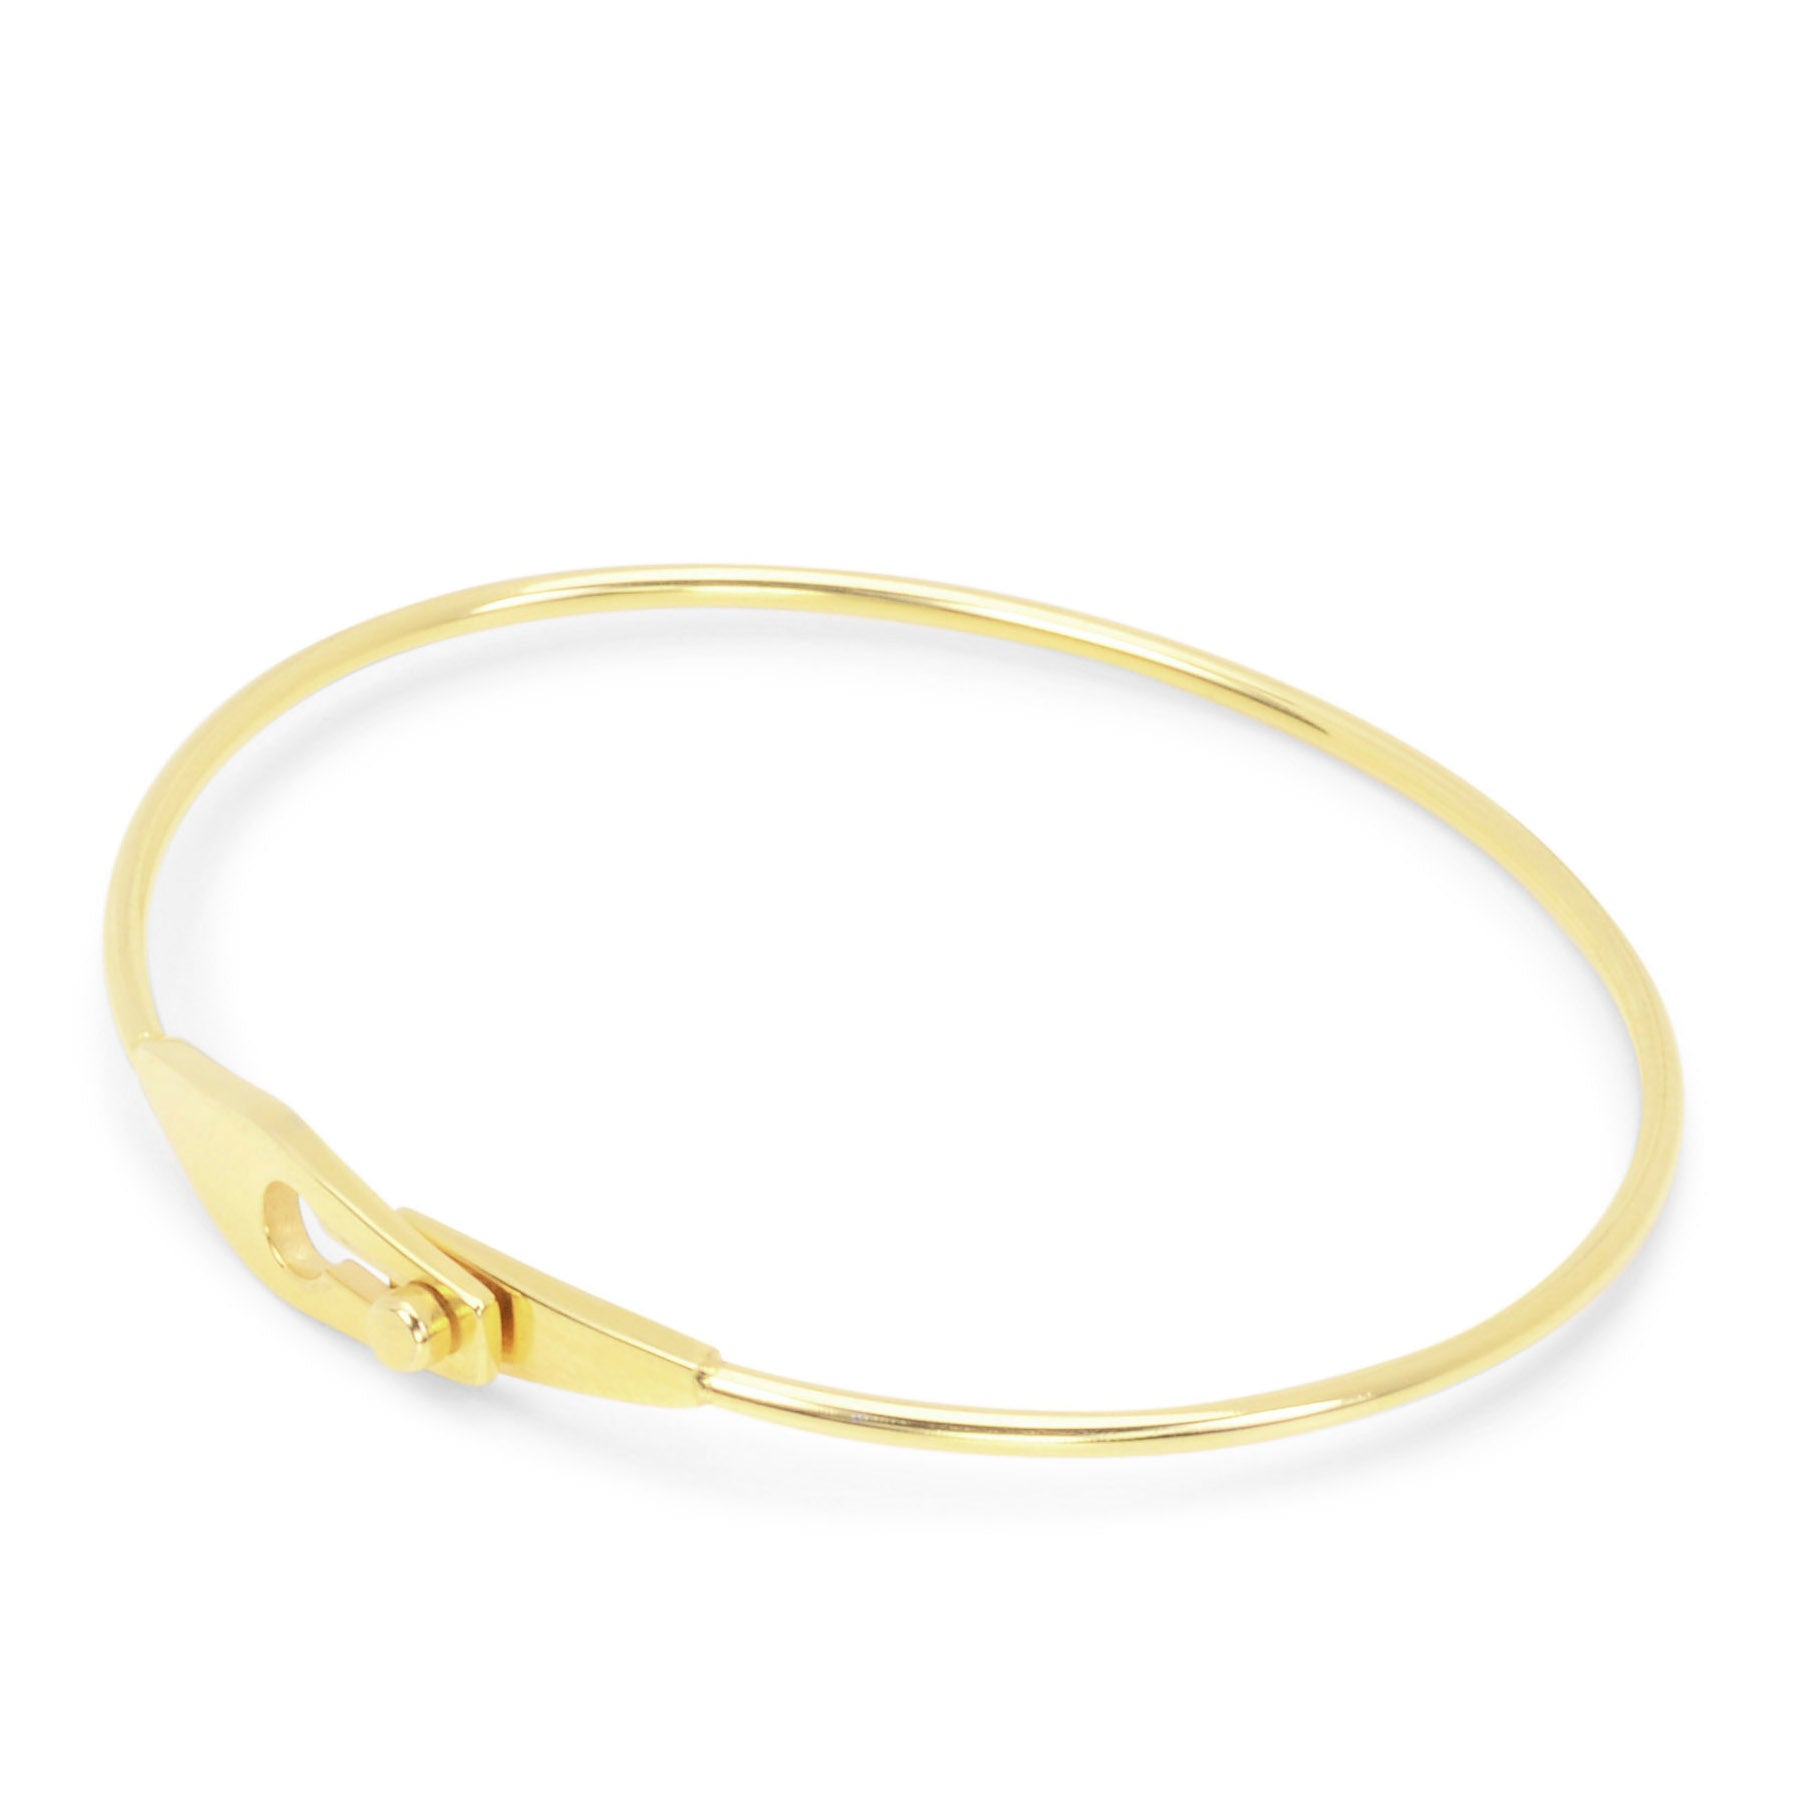 products girl goldbanglenew with gold designs bangles busy go hair ties extra circles bangle